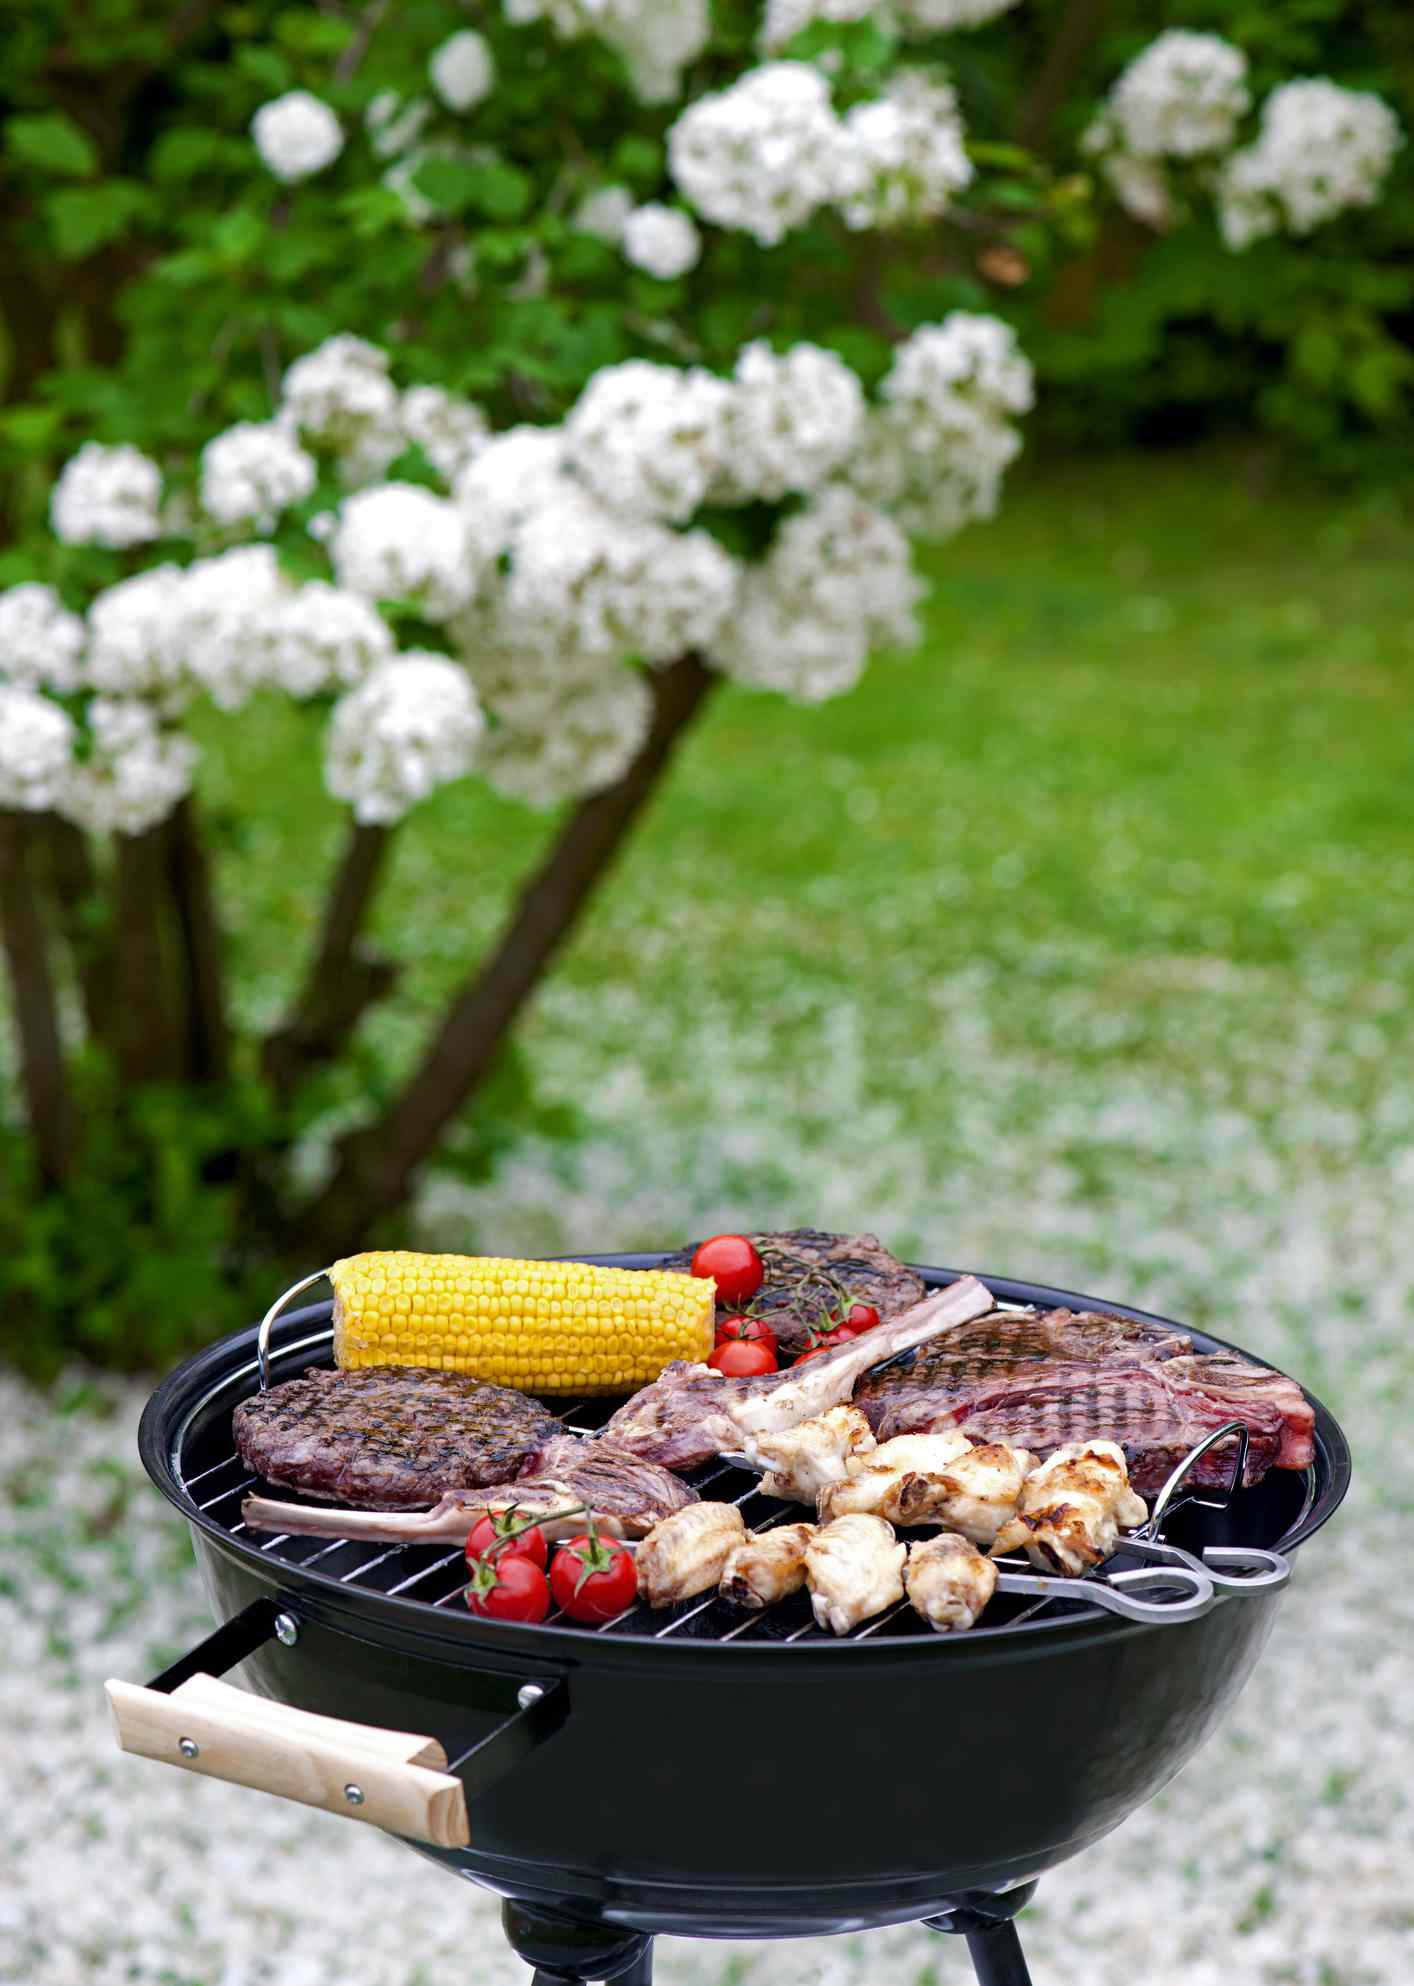 how to clean a grill - clean grill with fresh food